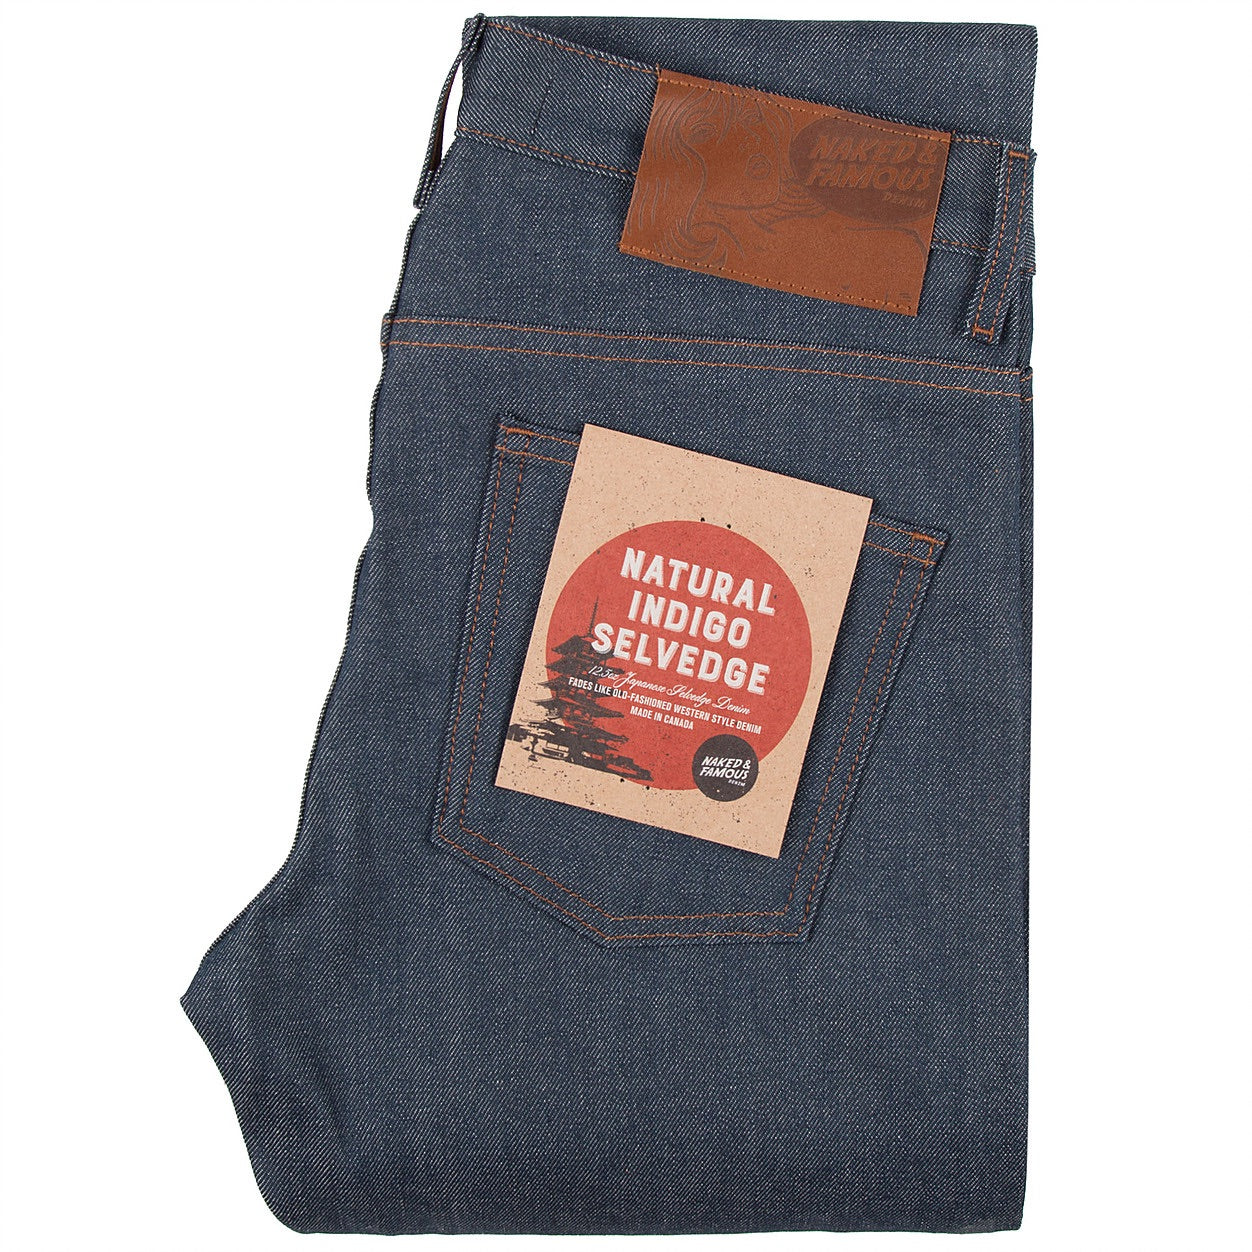 N&F - Natural Indigo - The Populess Company